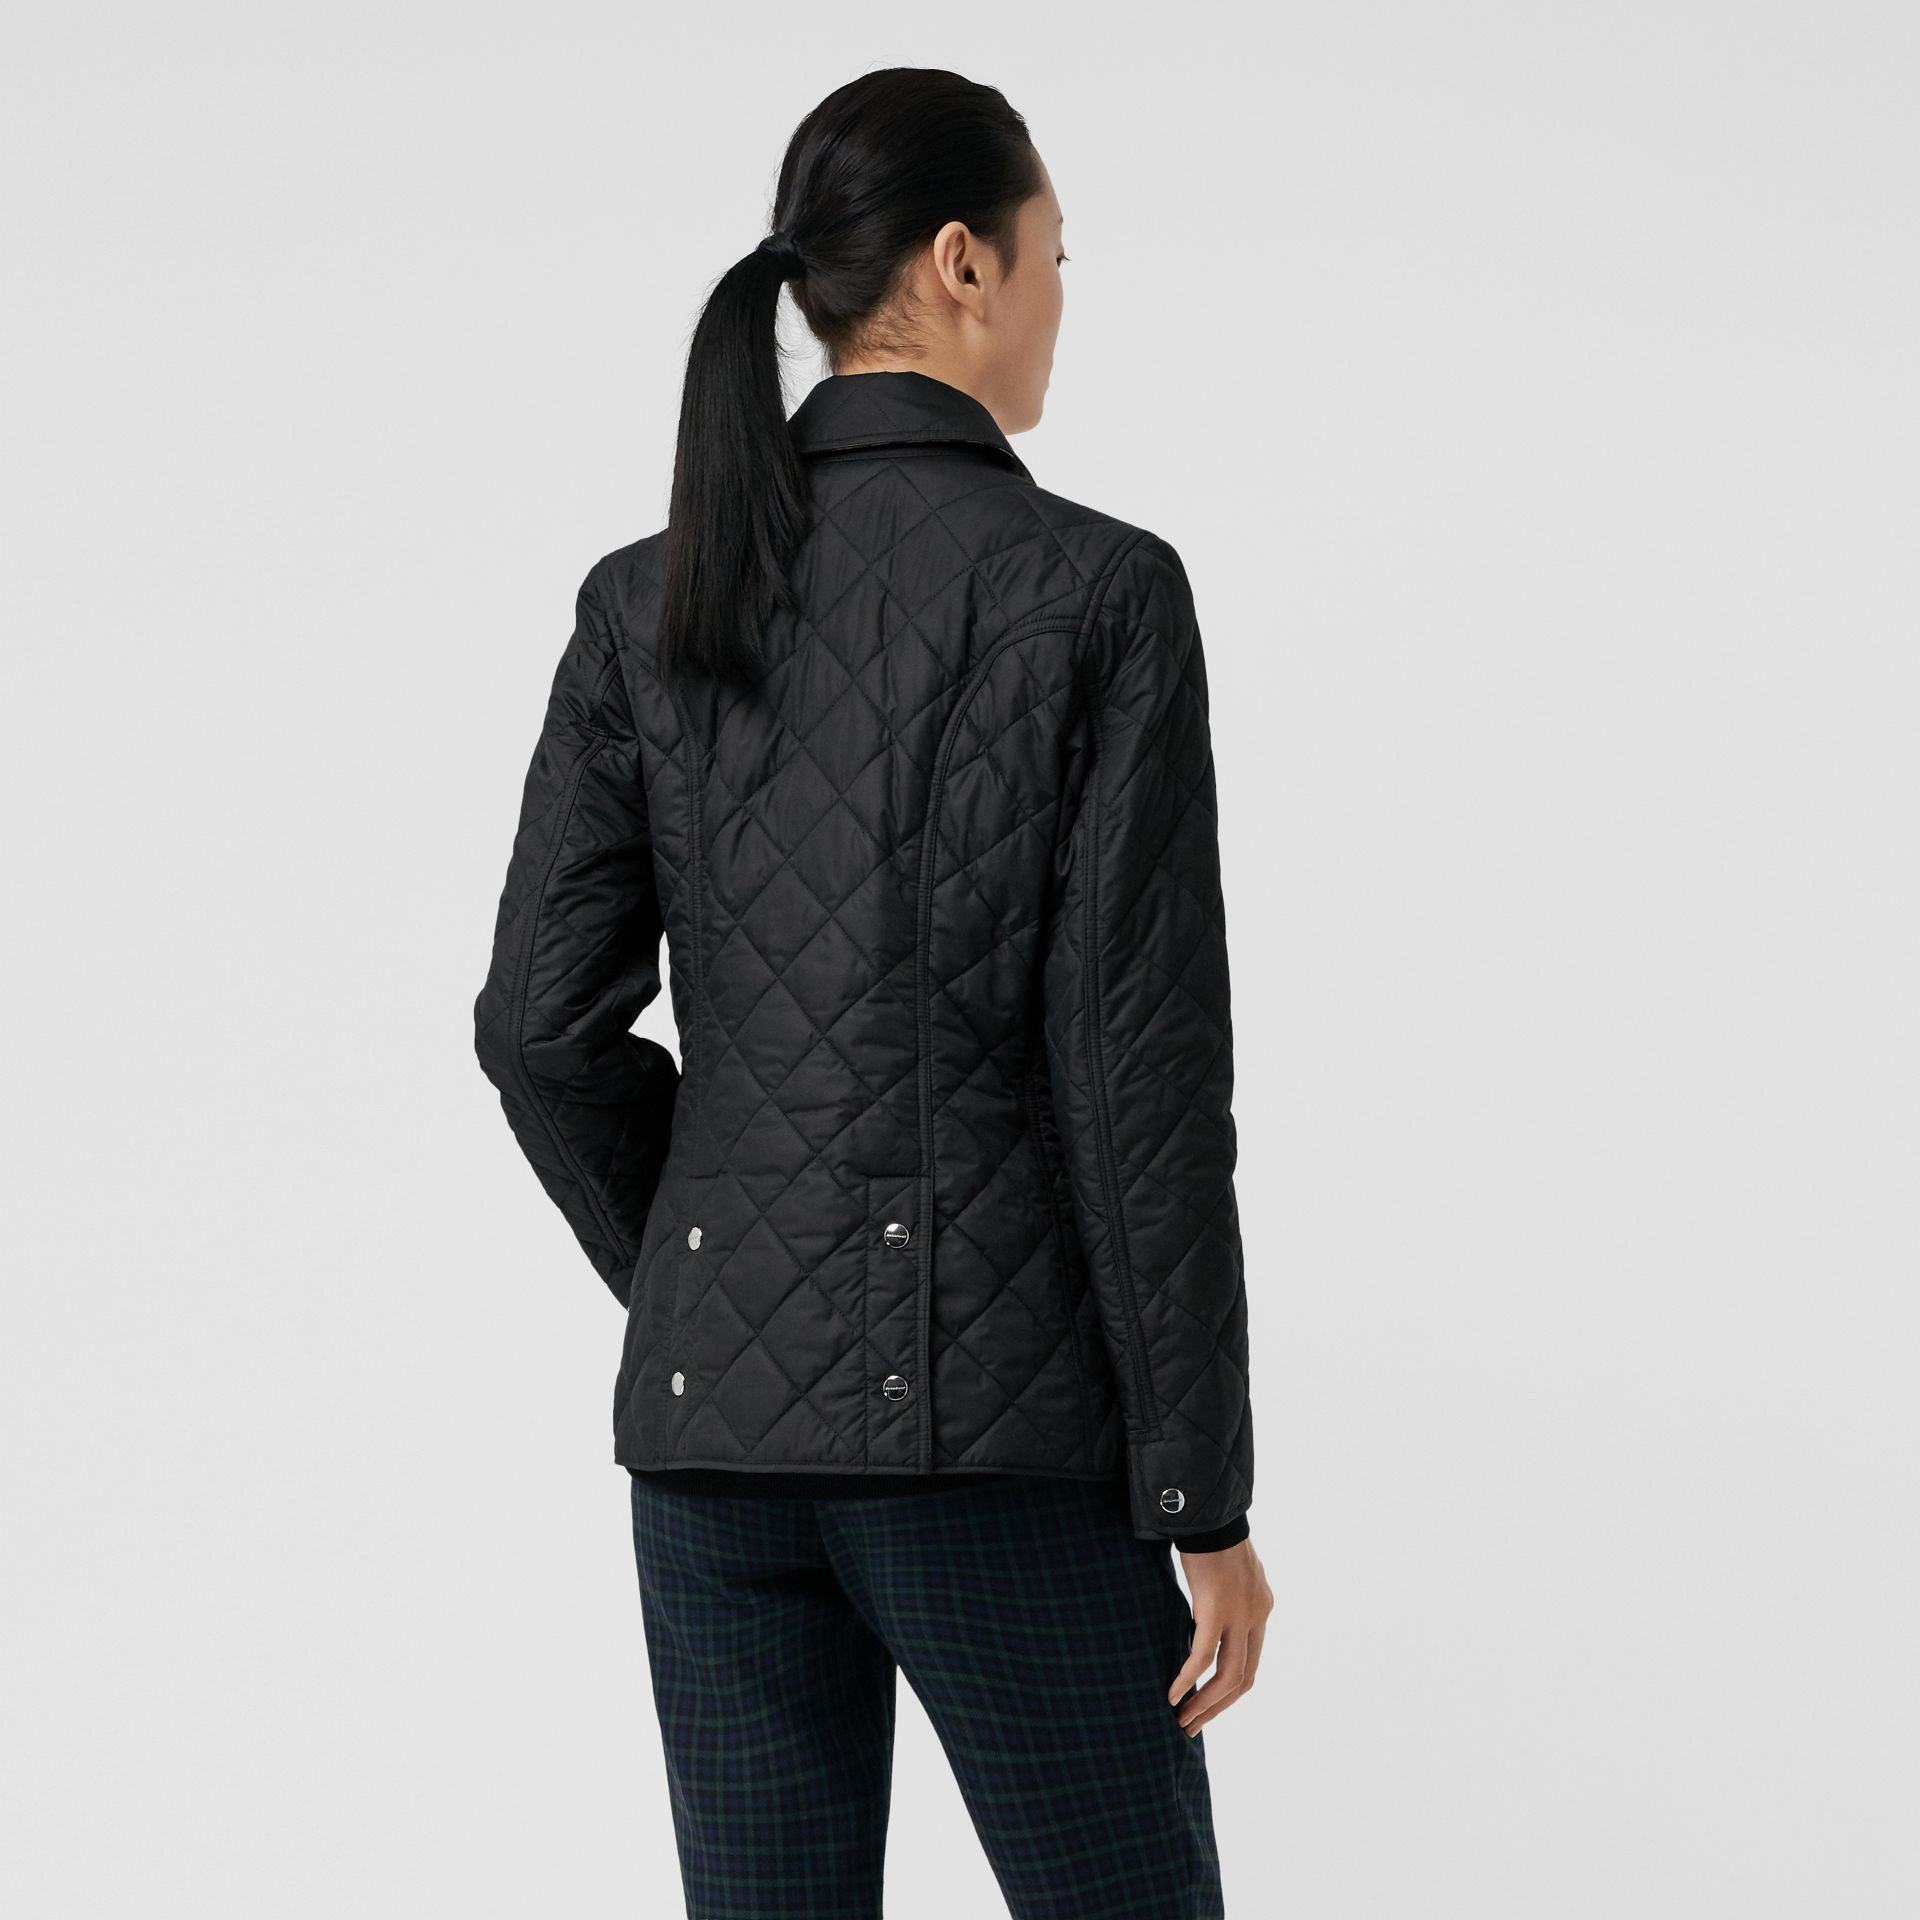 Embroidered Crest Diamond Quilted Jacket in Black - Women | Burberry United States - gallery image 2